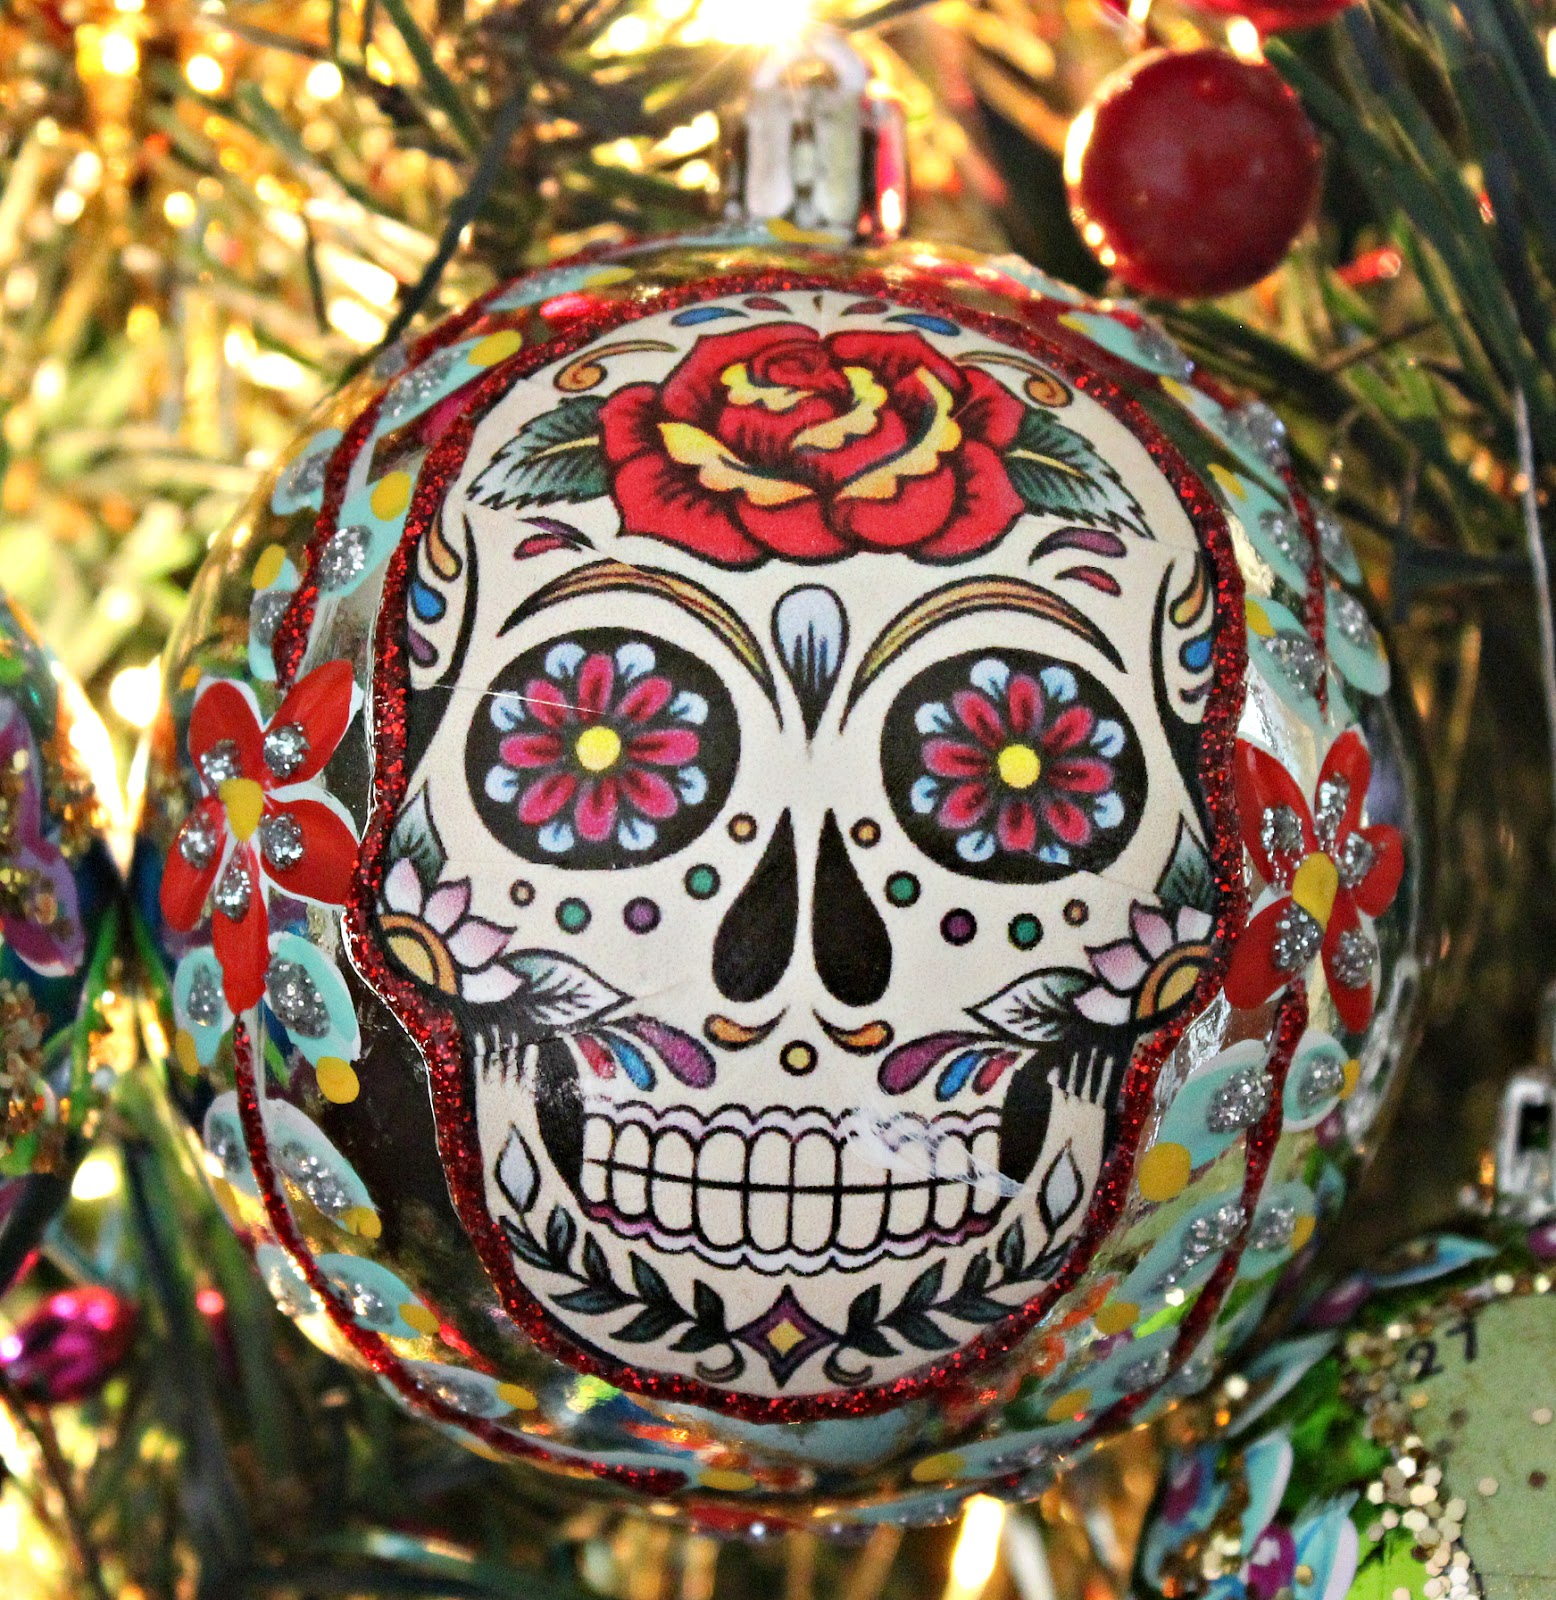 this is one of my favorites - Christmas Sugar Skull